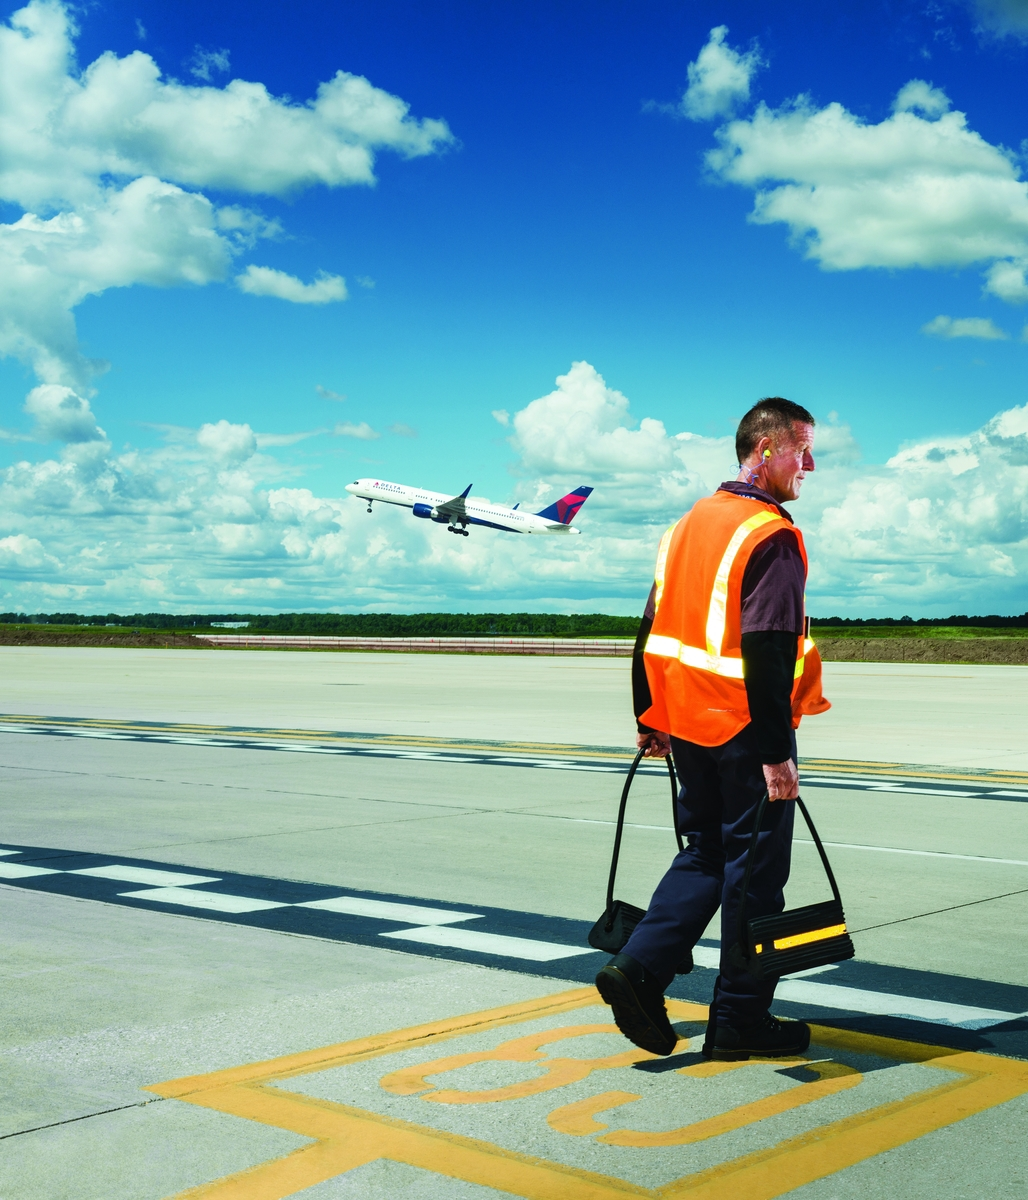 Employee on ramp with aircraft in flight